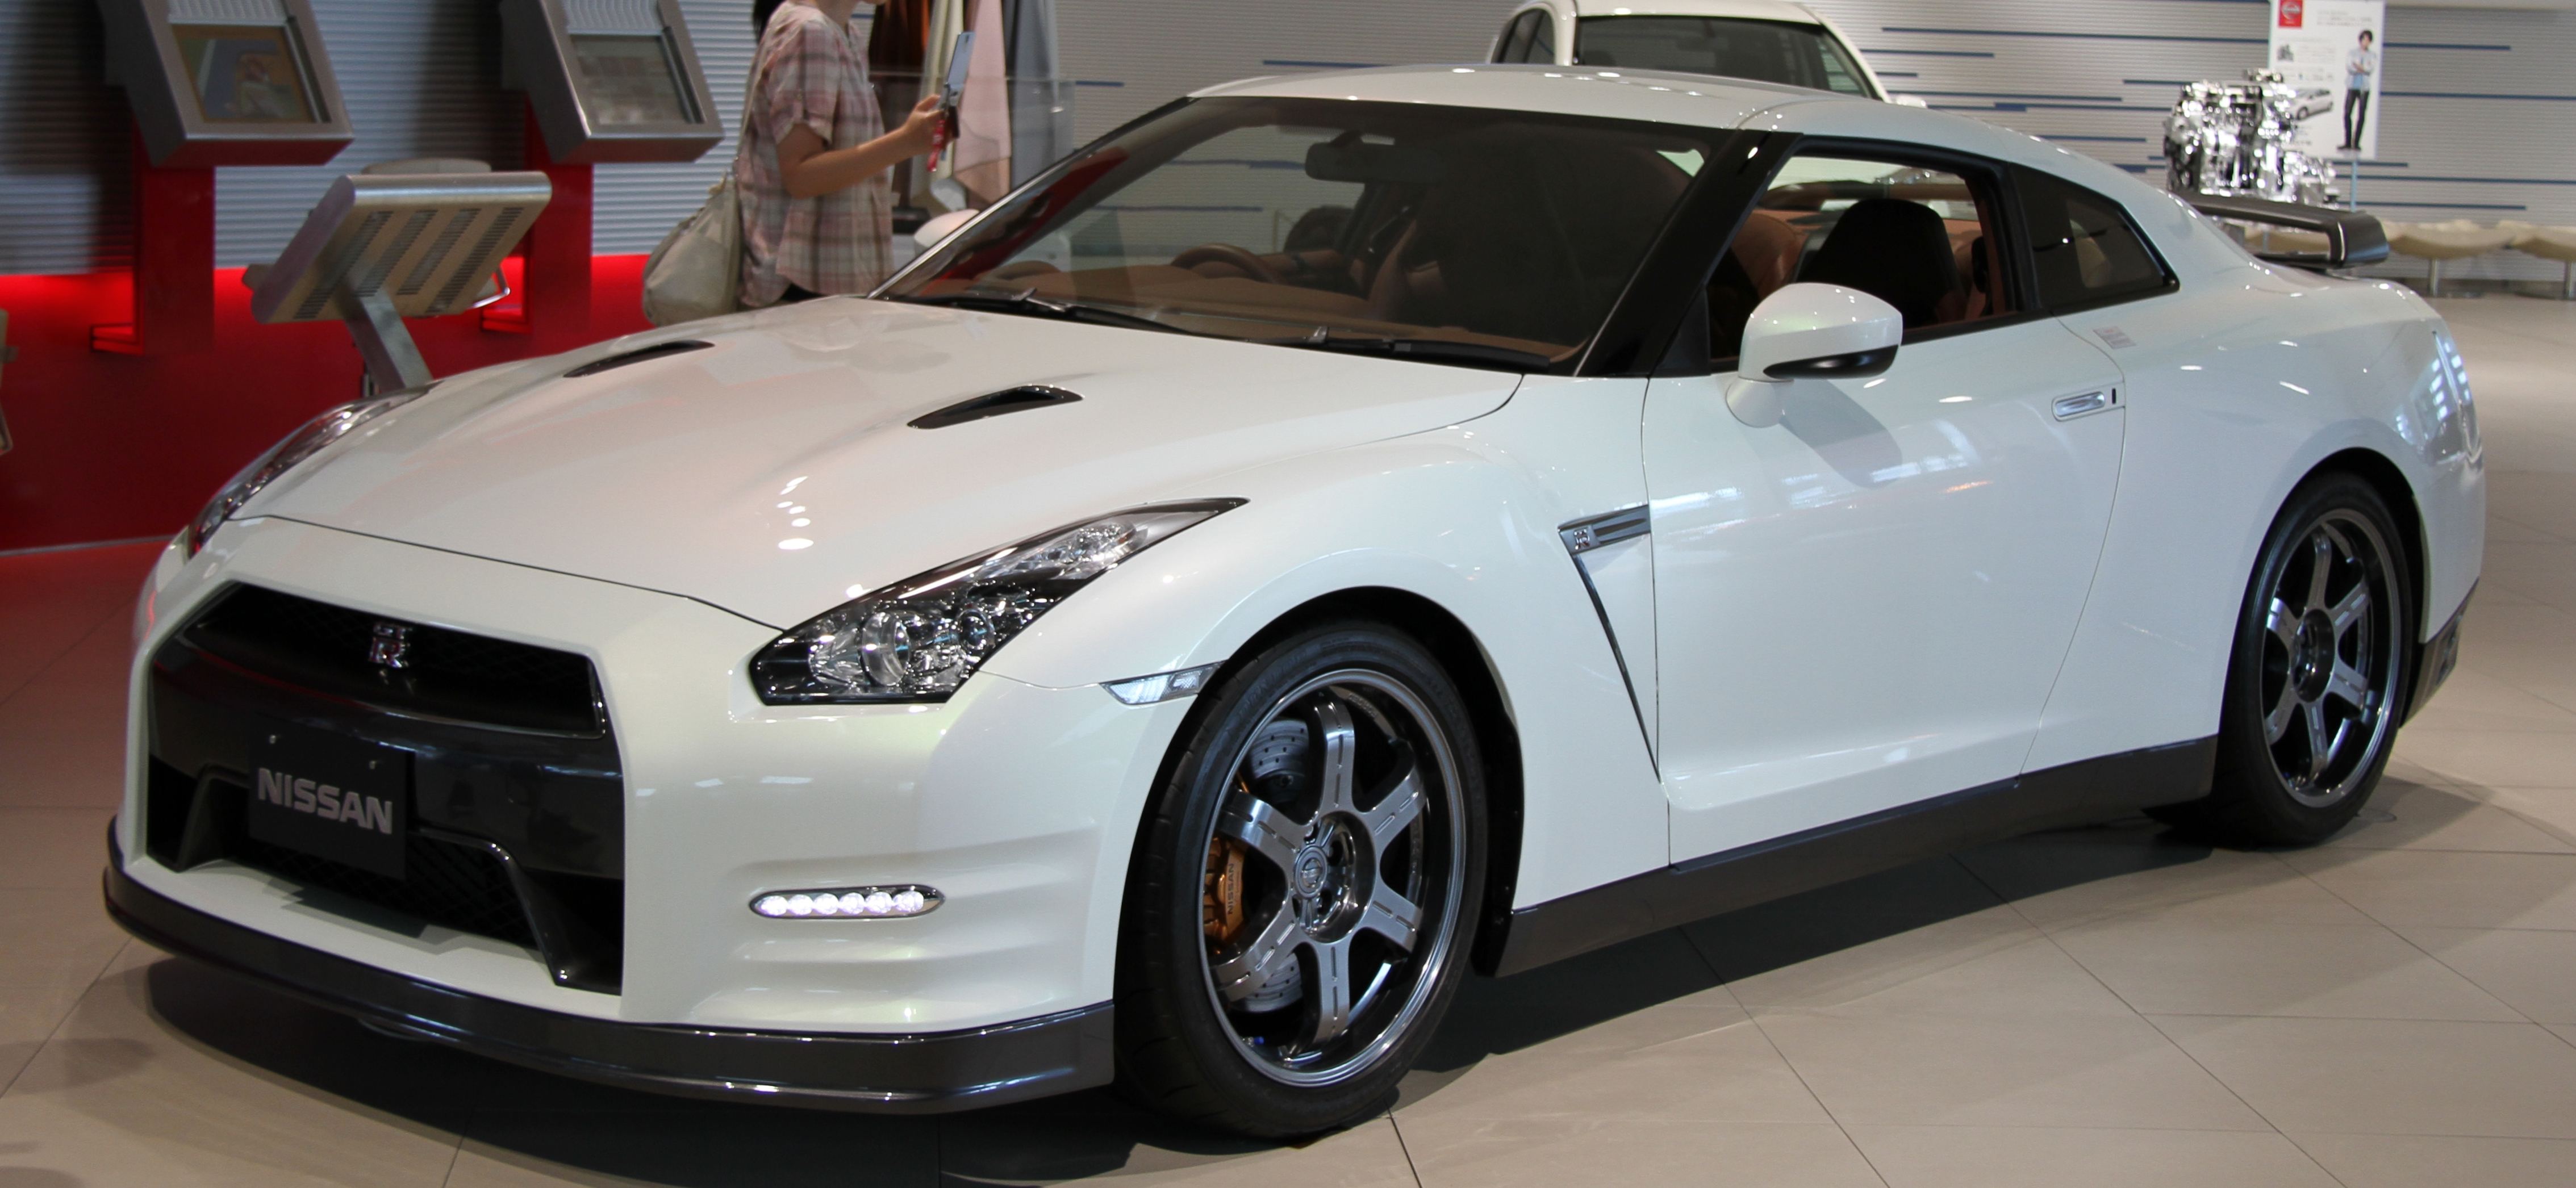 How Much Horsepower Does A Gtr Have >> Nissan Gt R Wikipedia